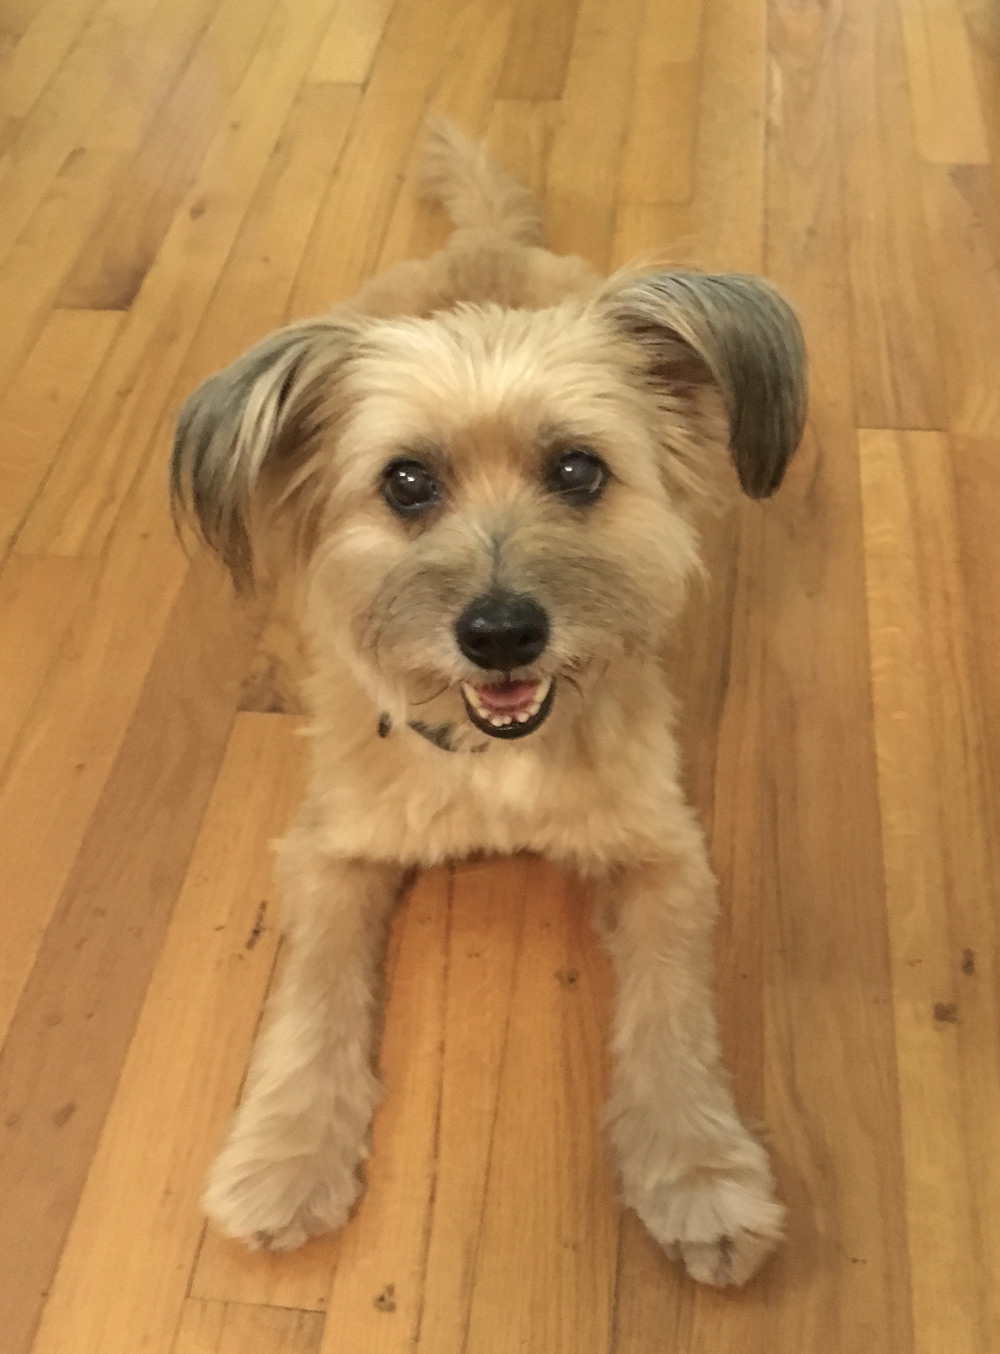 Meet Denise R.'s Patootie, an adorable, smiling Terrier mix. She is ready to play!